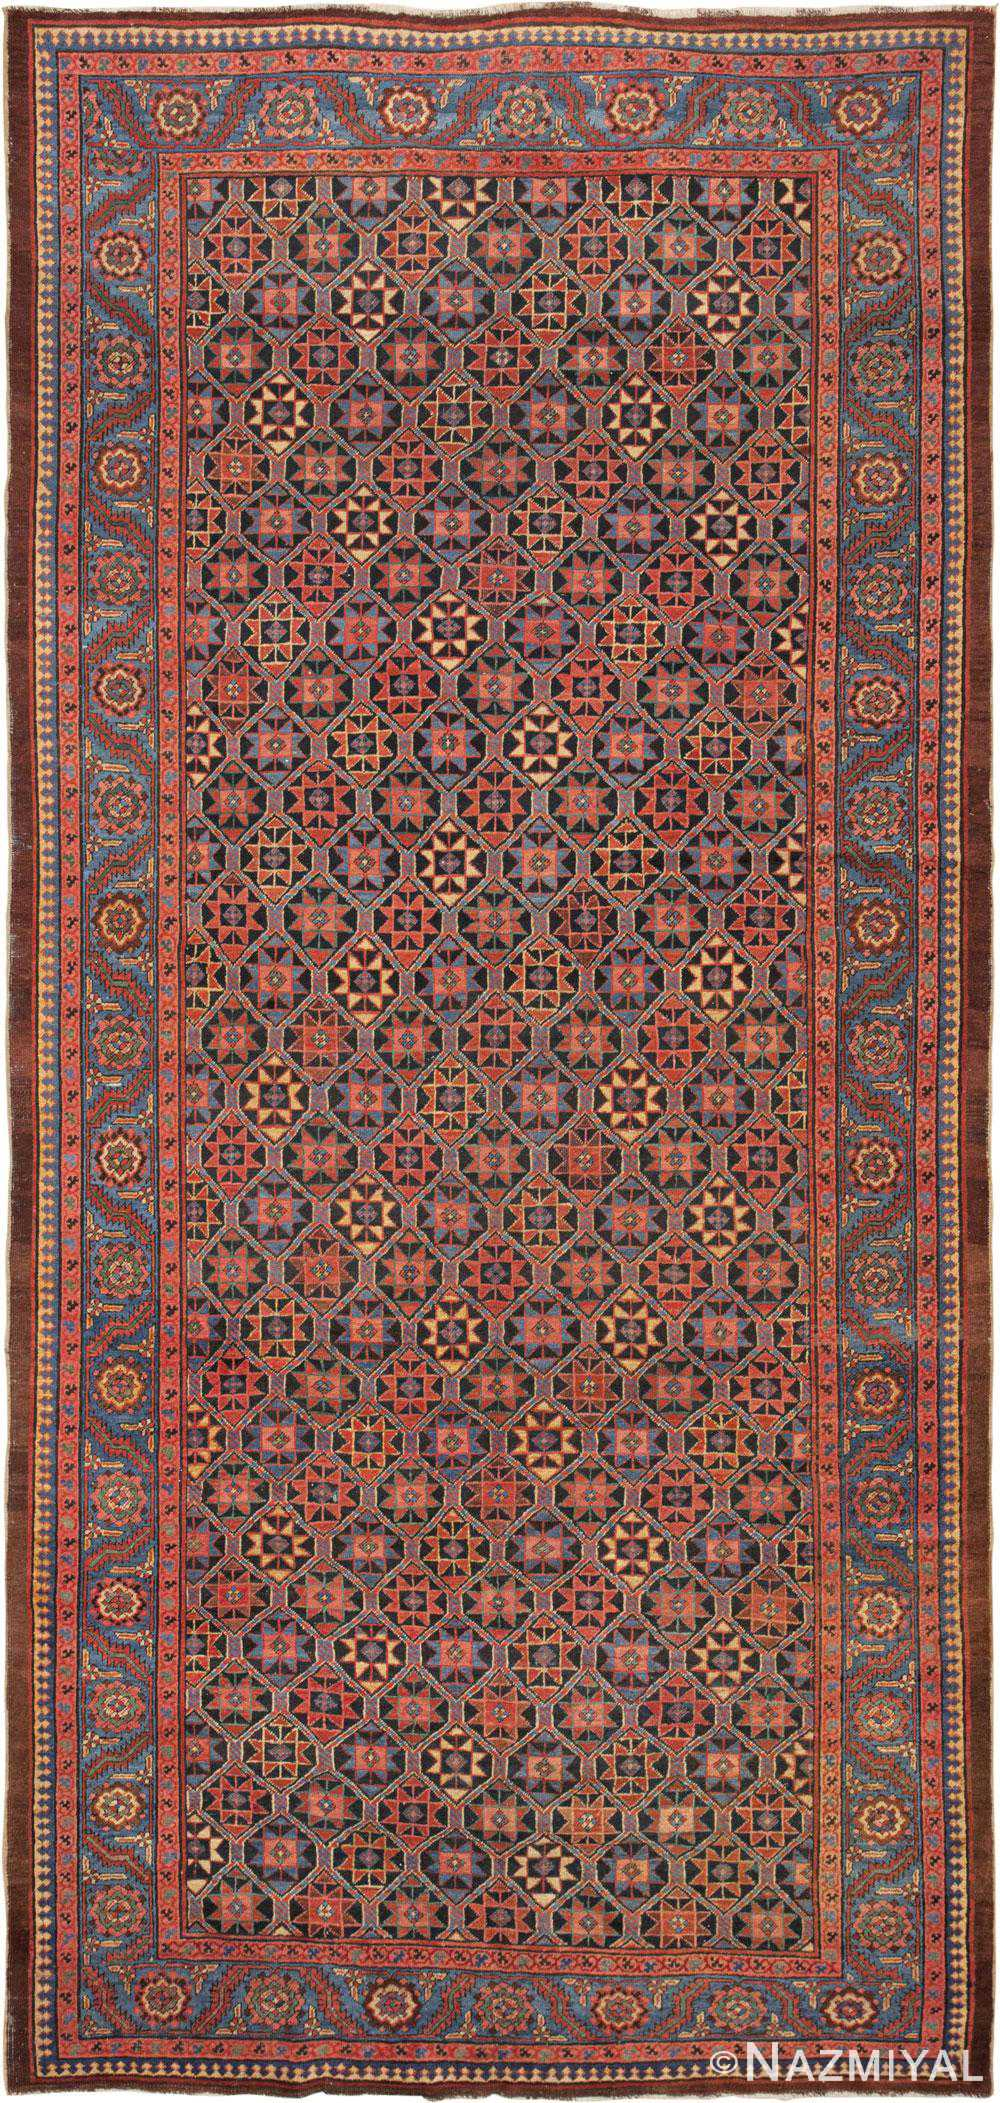 Antique Bakshaiesh Rug 45892 Detail/Large View